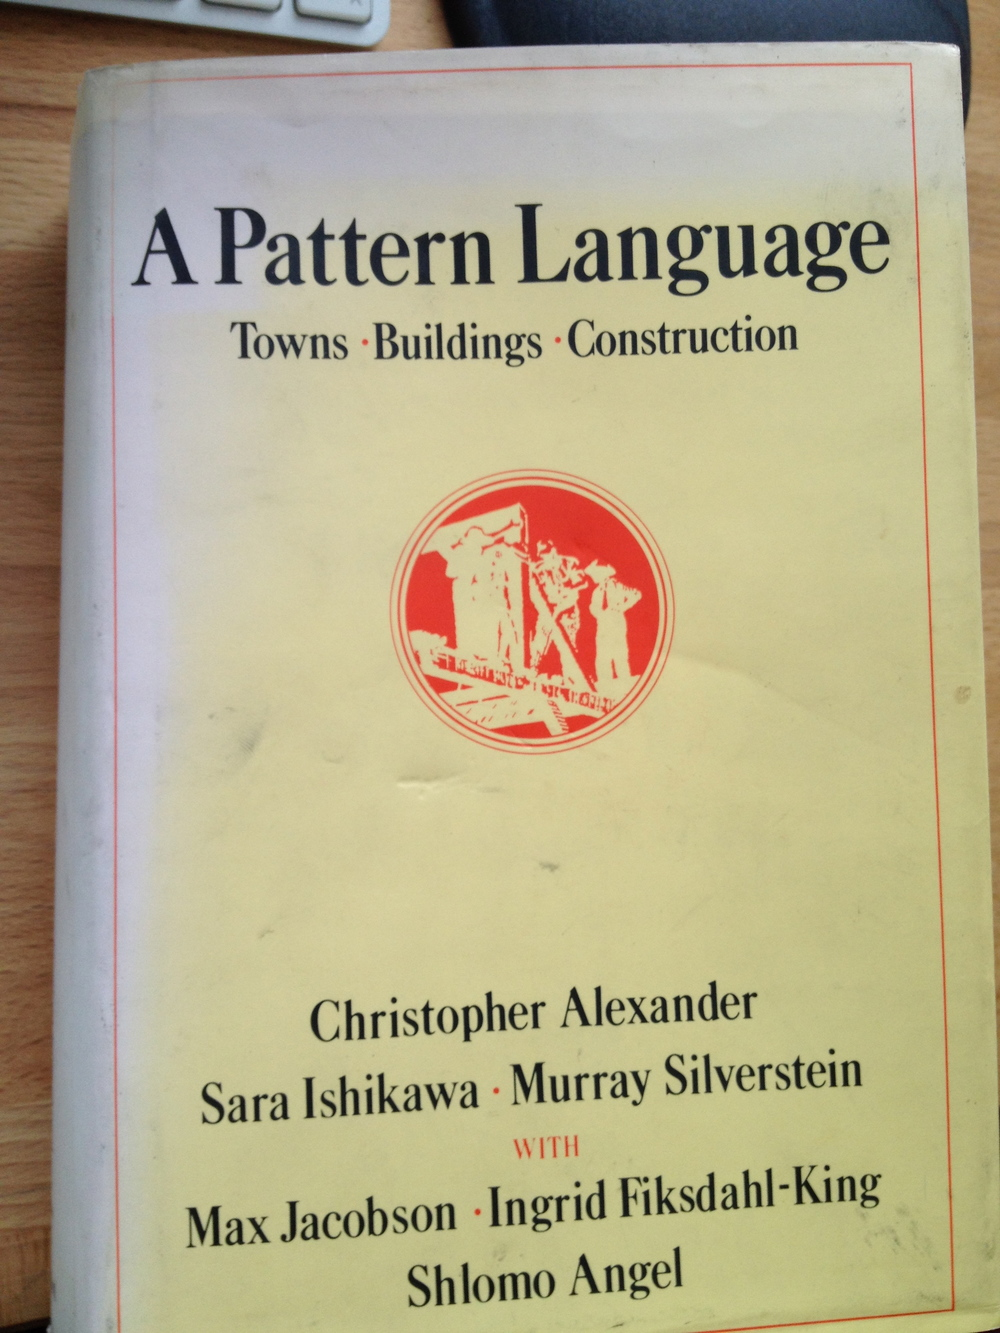 A Pattern Language By Christopher Alexander, Sara Ishikawa and Murray Silverstein